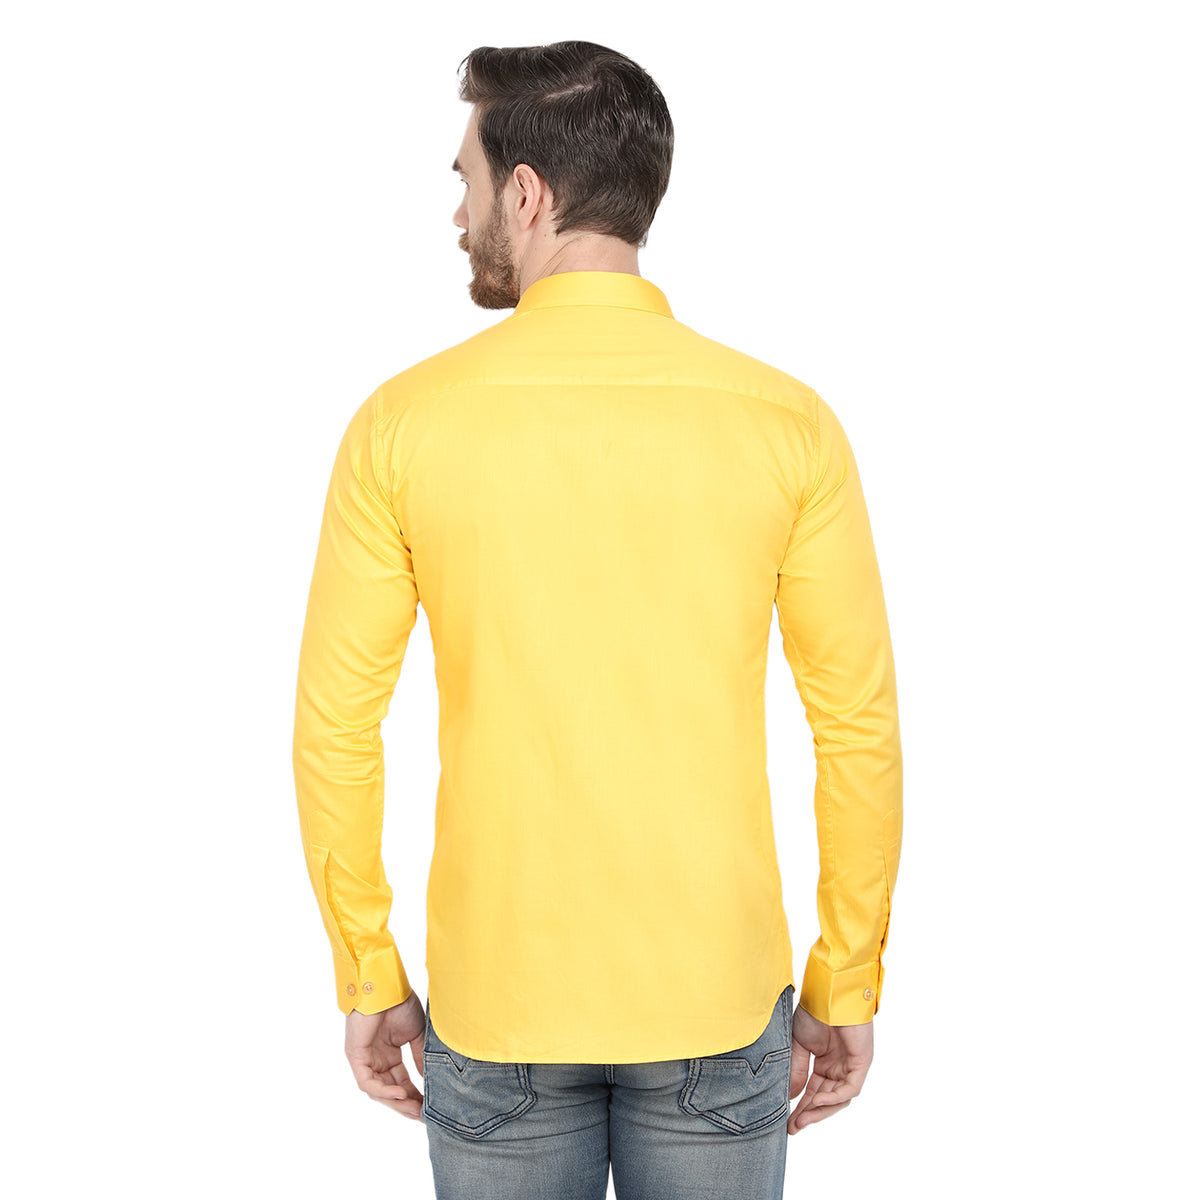 Men's Formal Dark Yellow Cotton Shirt Code-1009 - Tooley Shirts